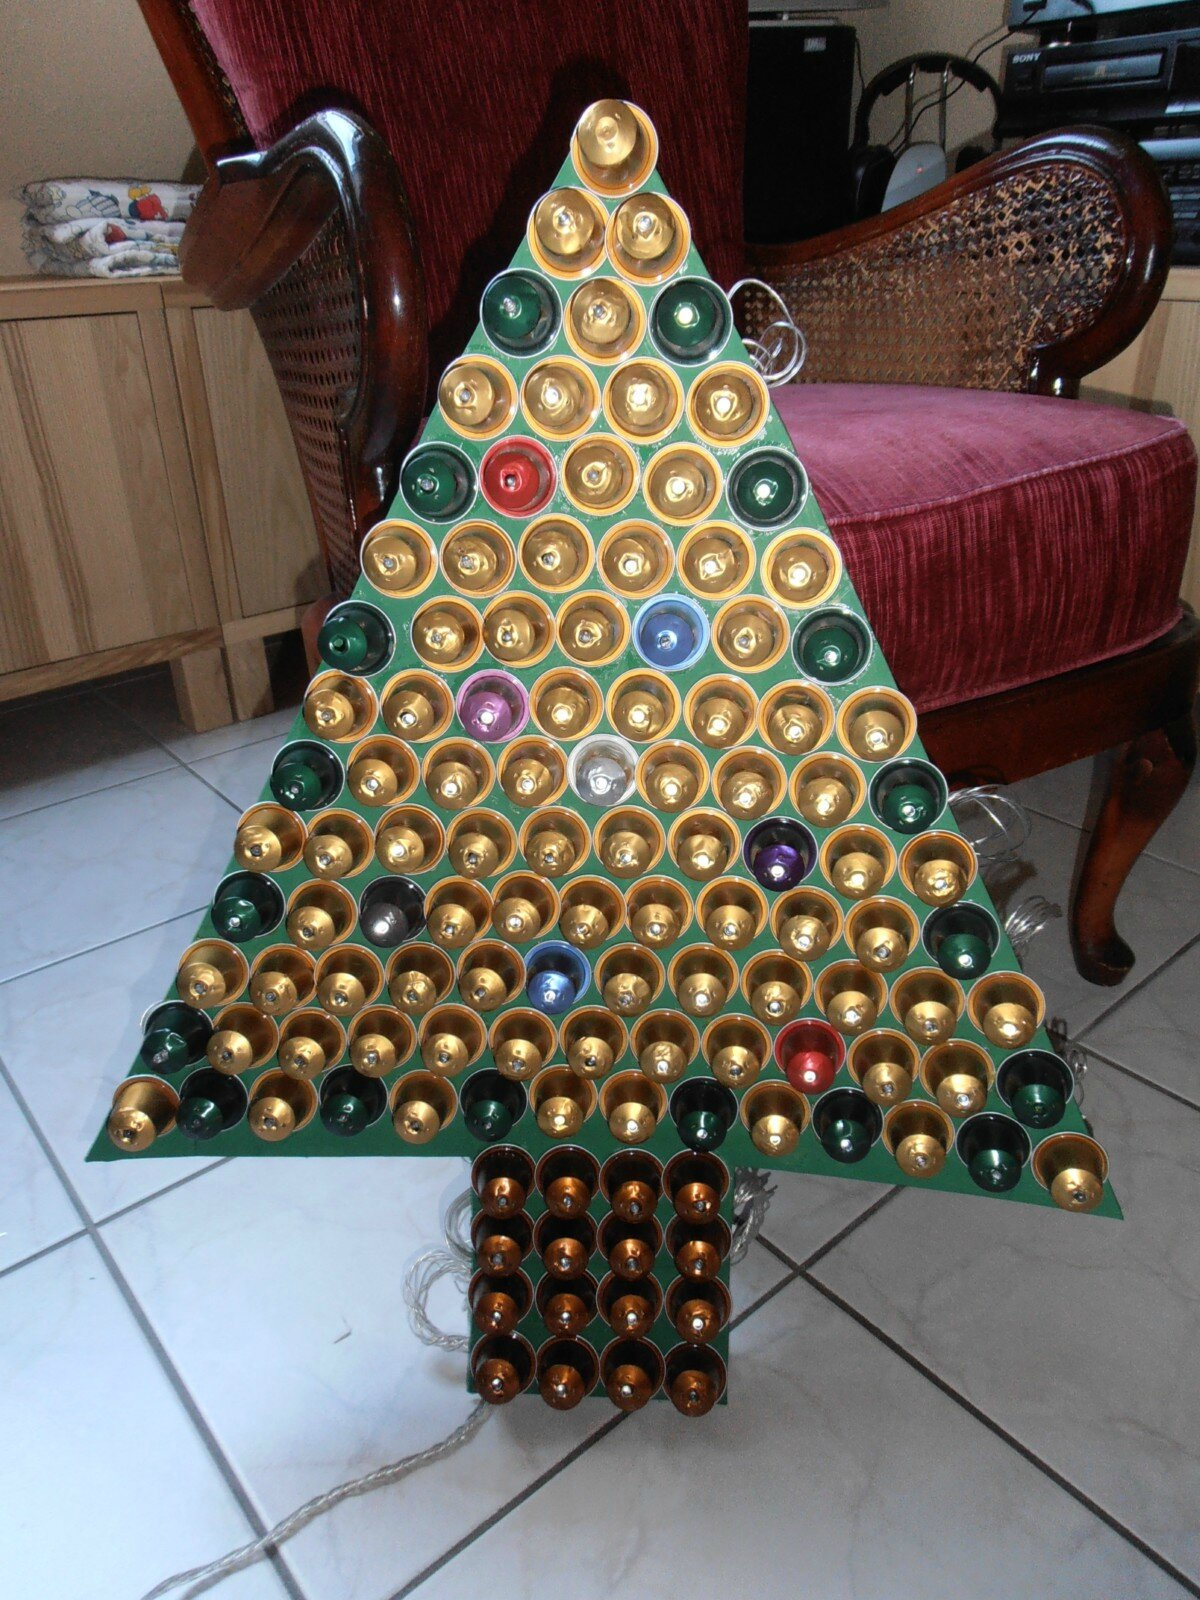 Hervorragend Sapin de Noël en capsules de Nespresso - Brico-déco-couture and co BE64